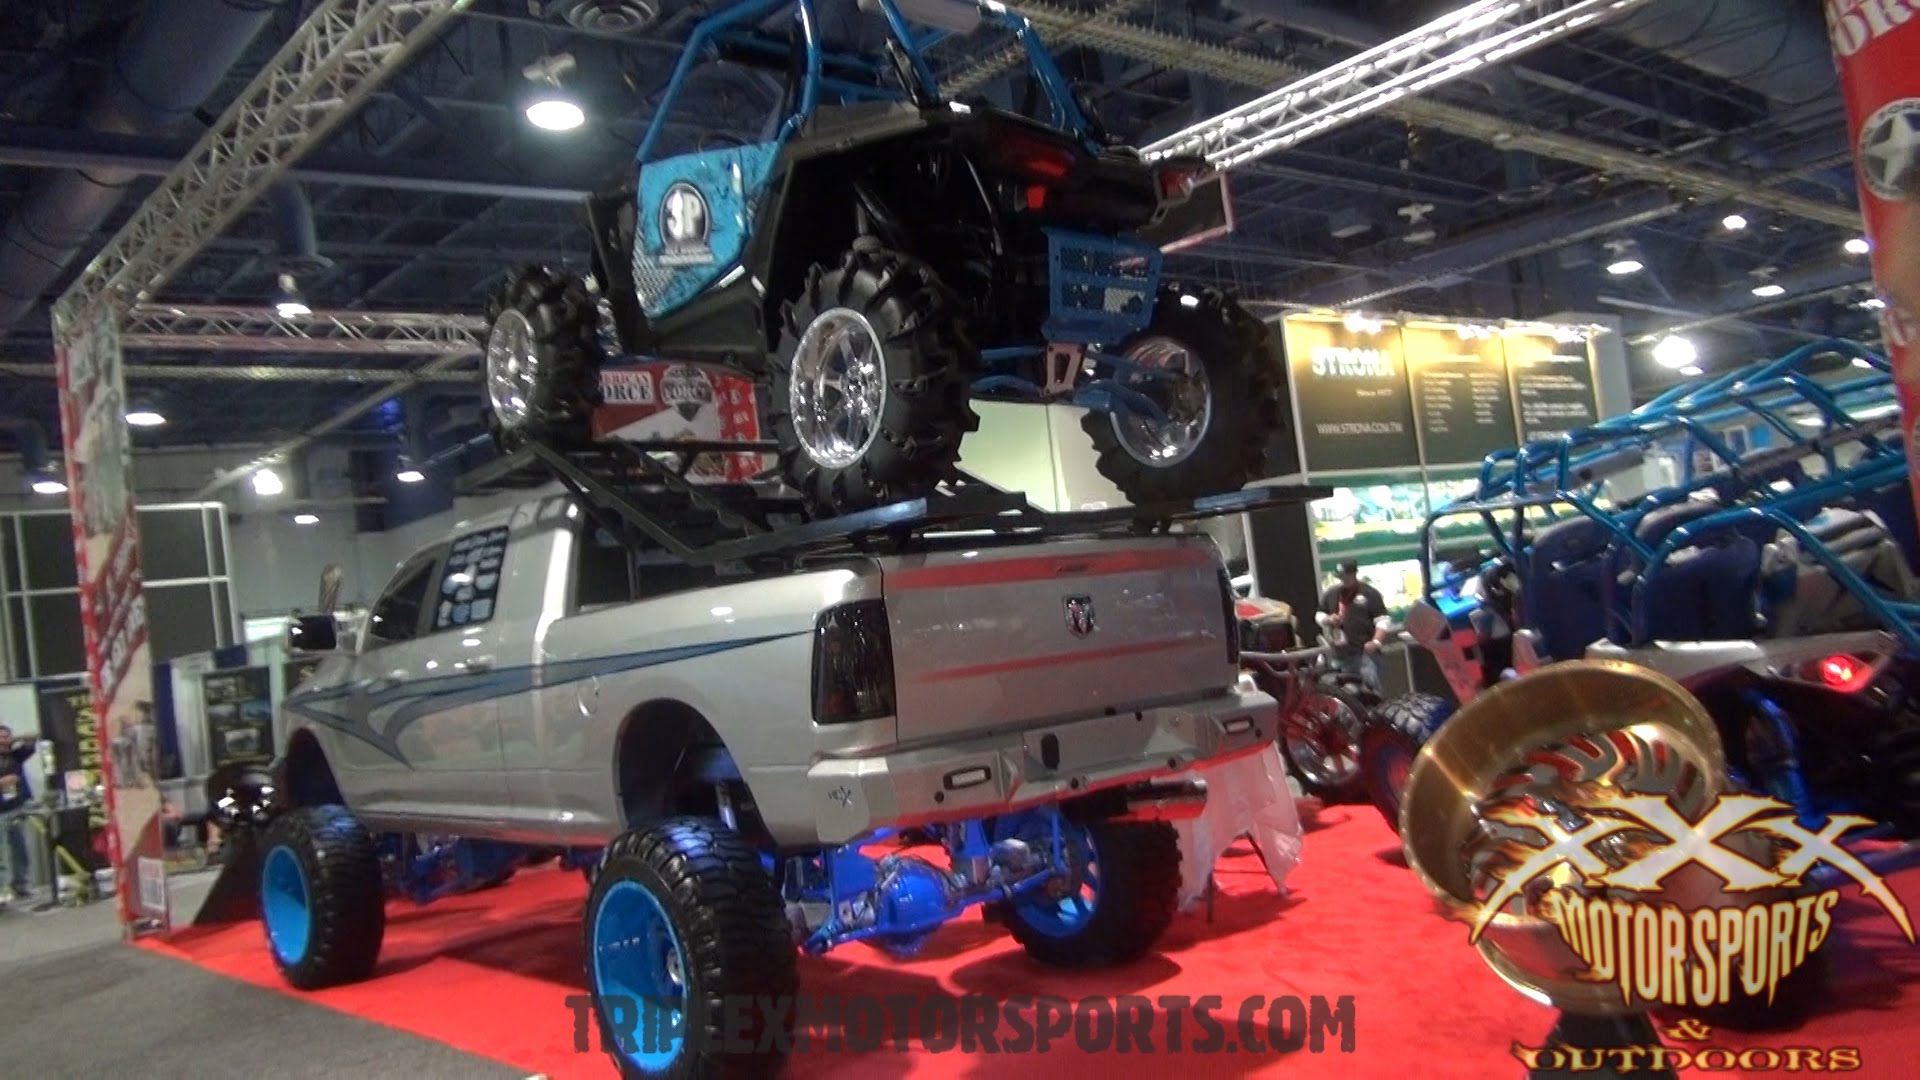 Amazing Collection Of Some Serious Off Road Machinery